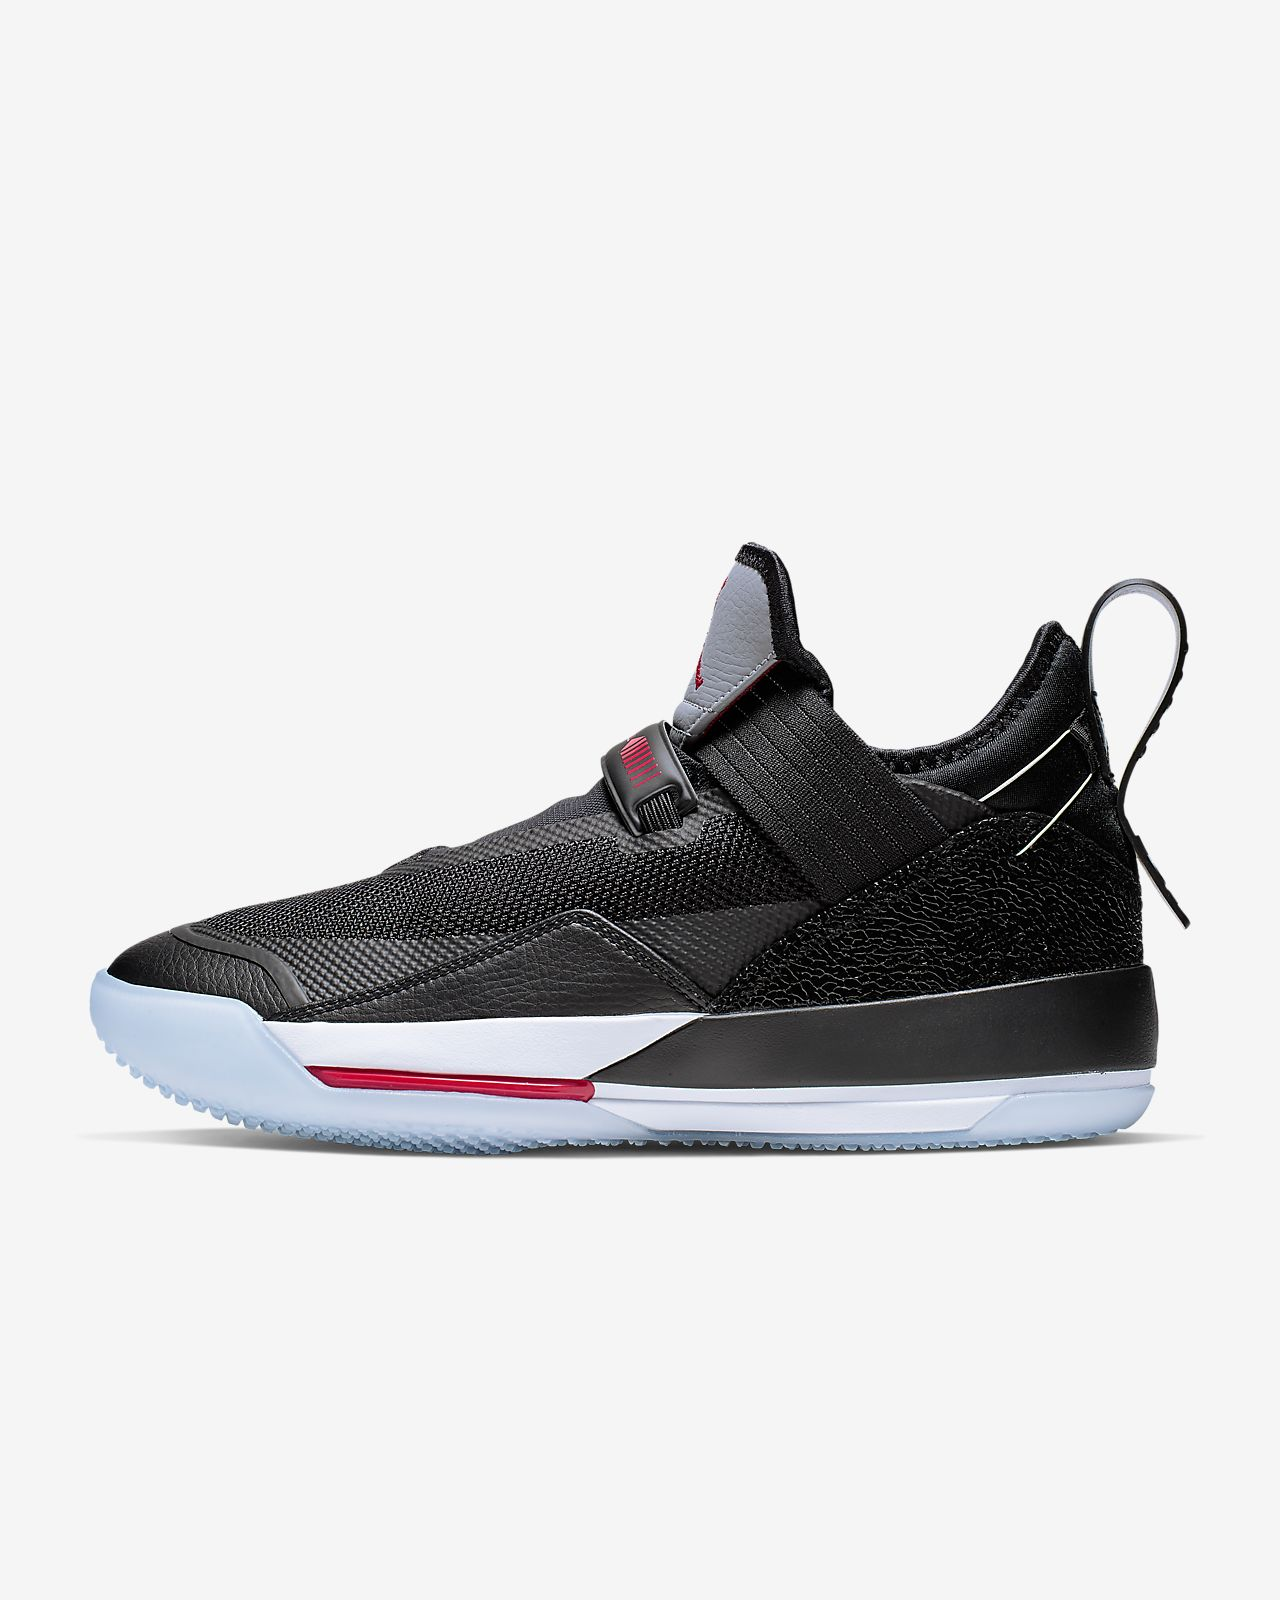 Chaussure de basketball Air Jordan XXXIII SE